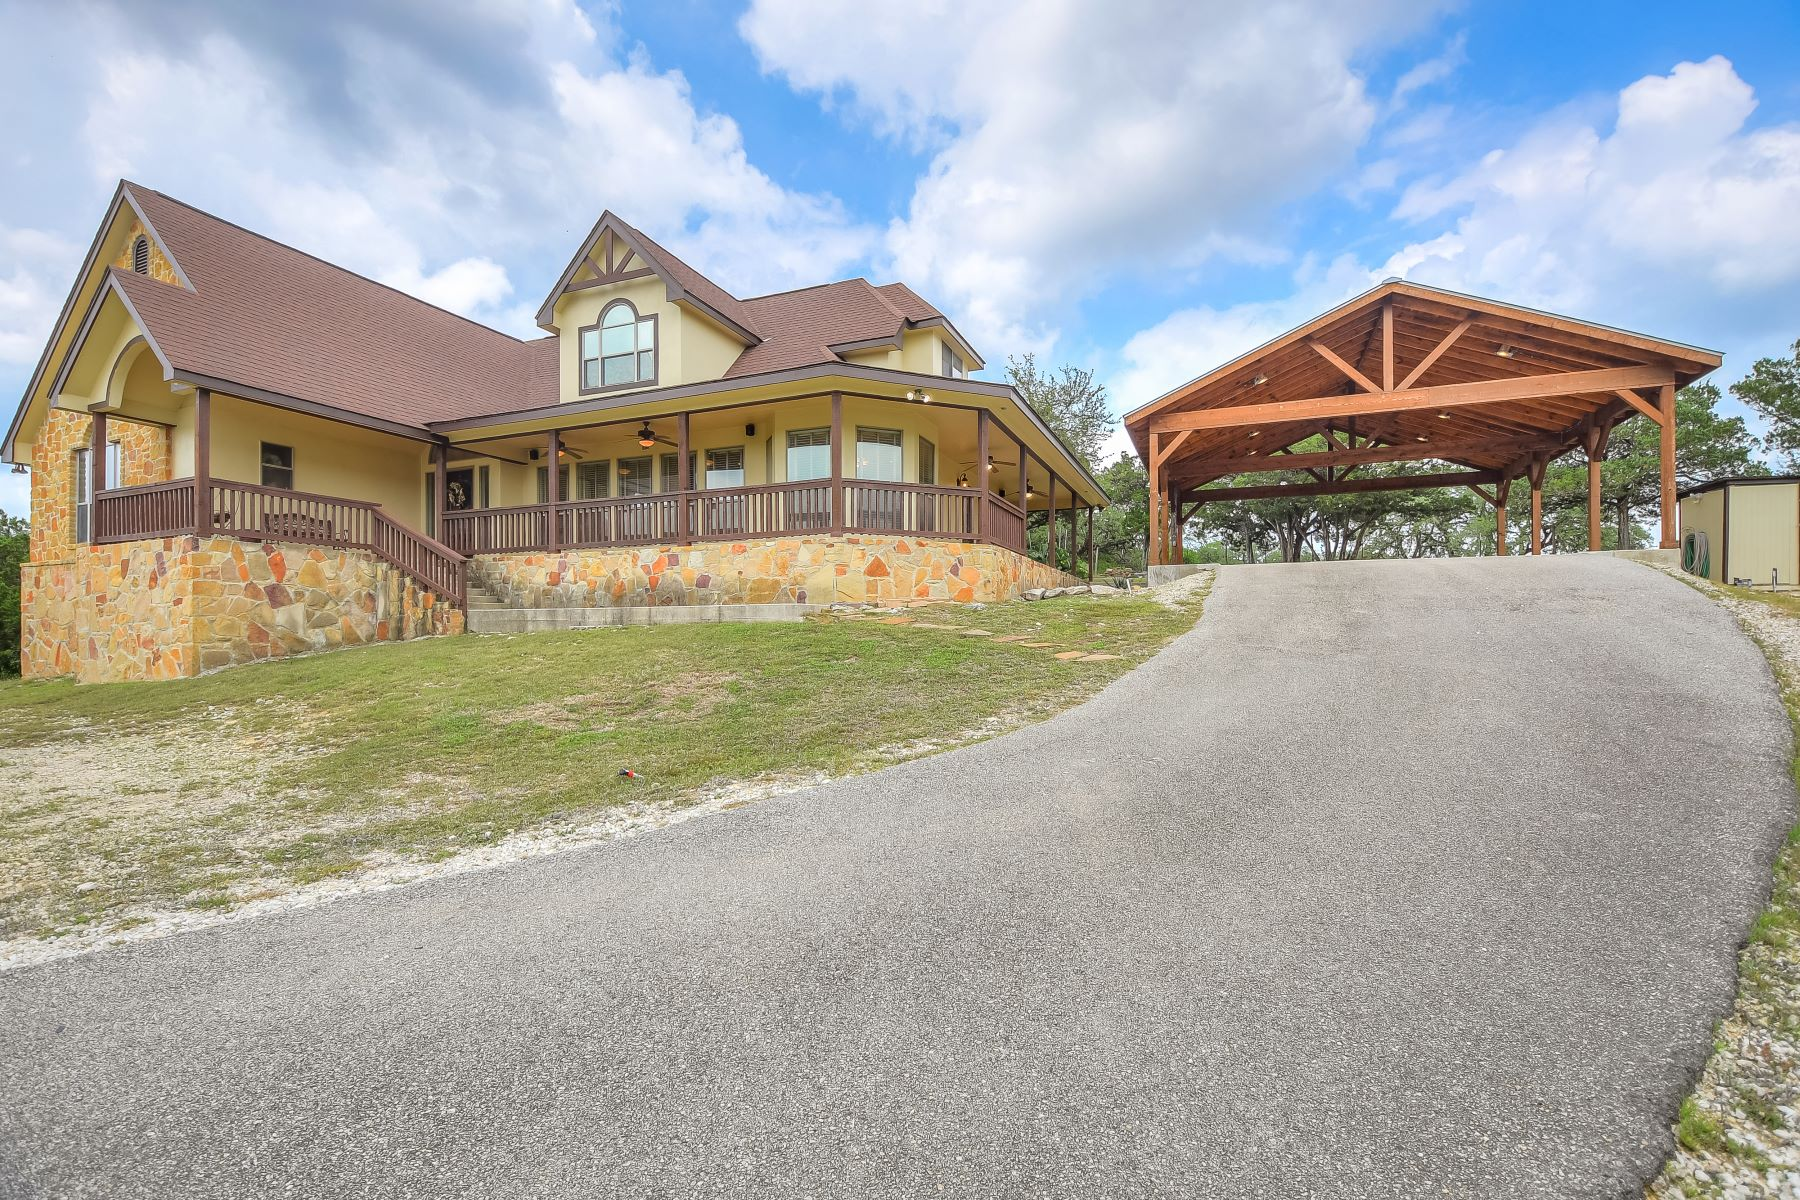 Single Family Homes for Active at Hill Country Gem with Amazing Views 9715-6 Park Drive Helotes, Texas 78023 United States